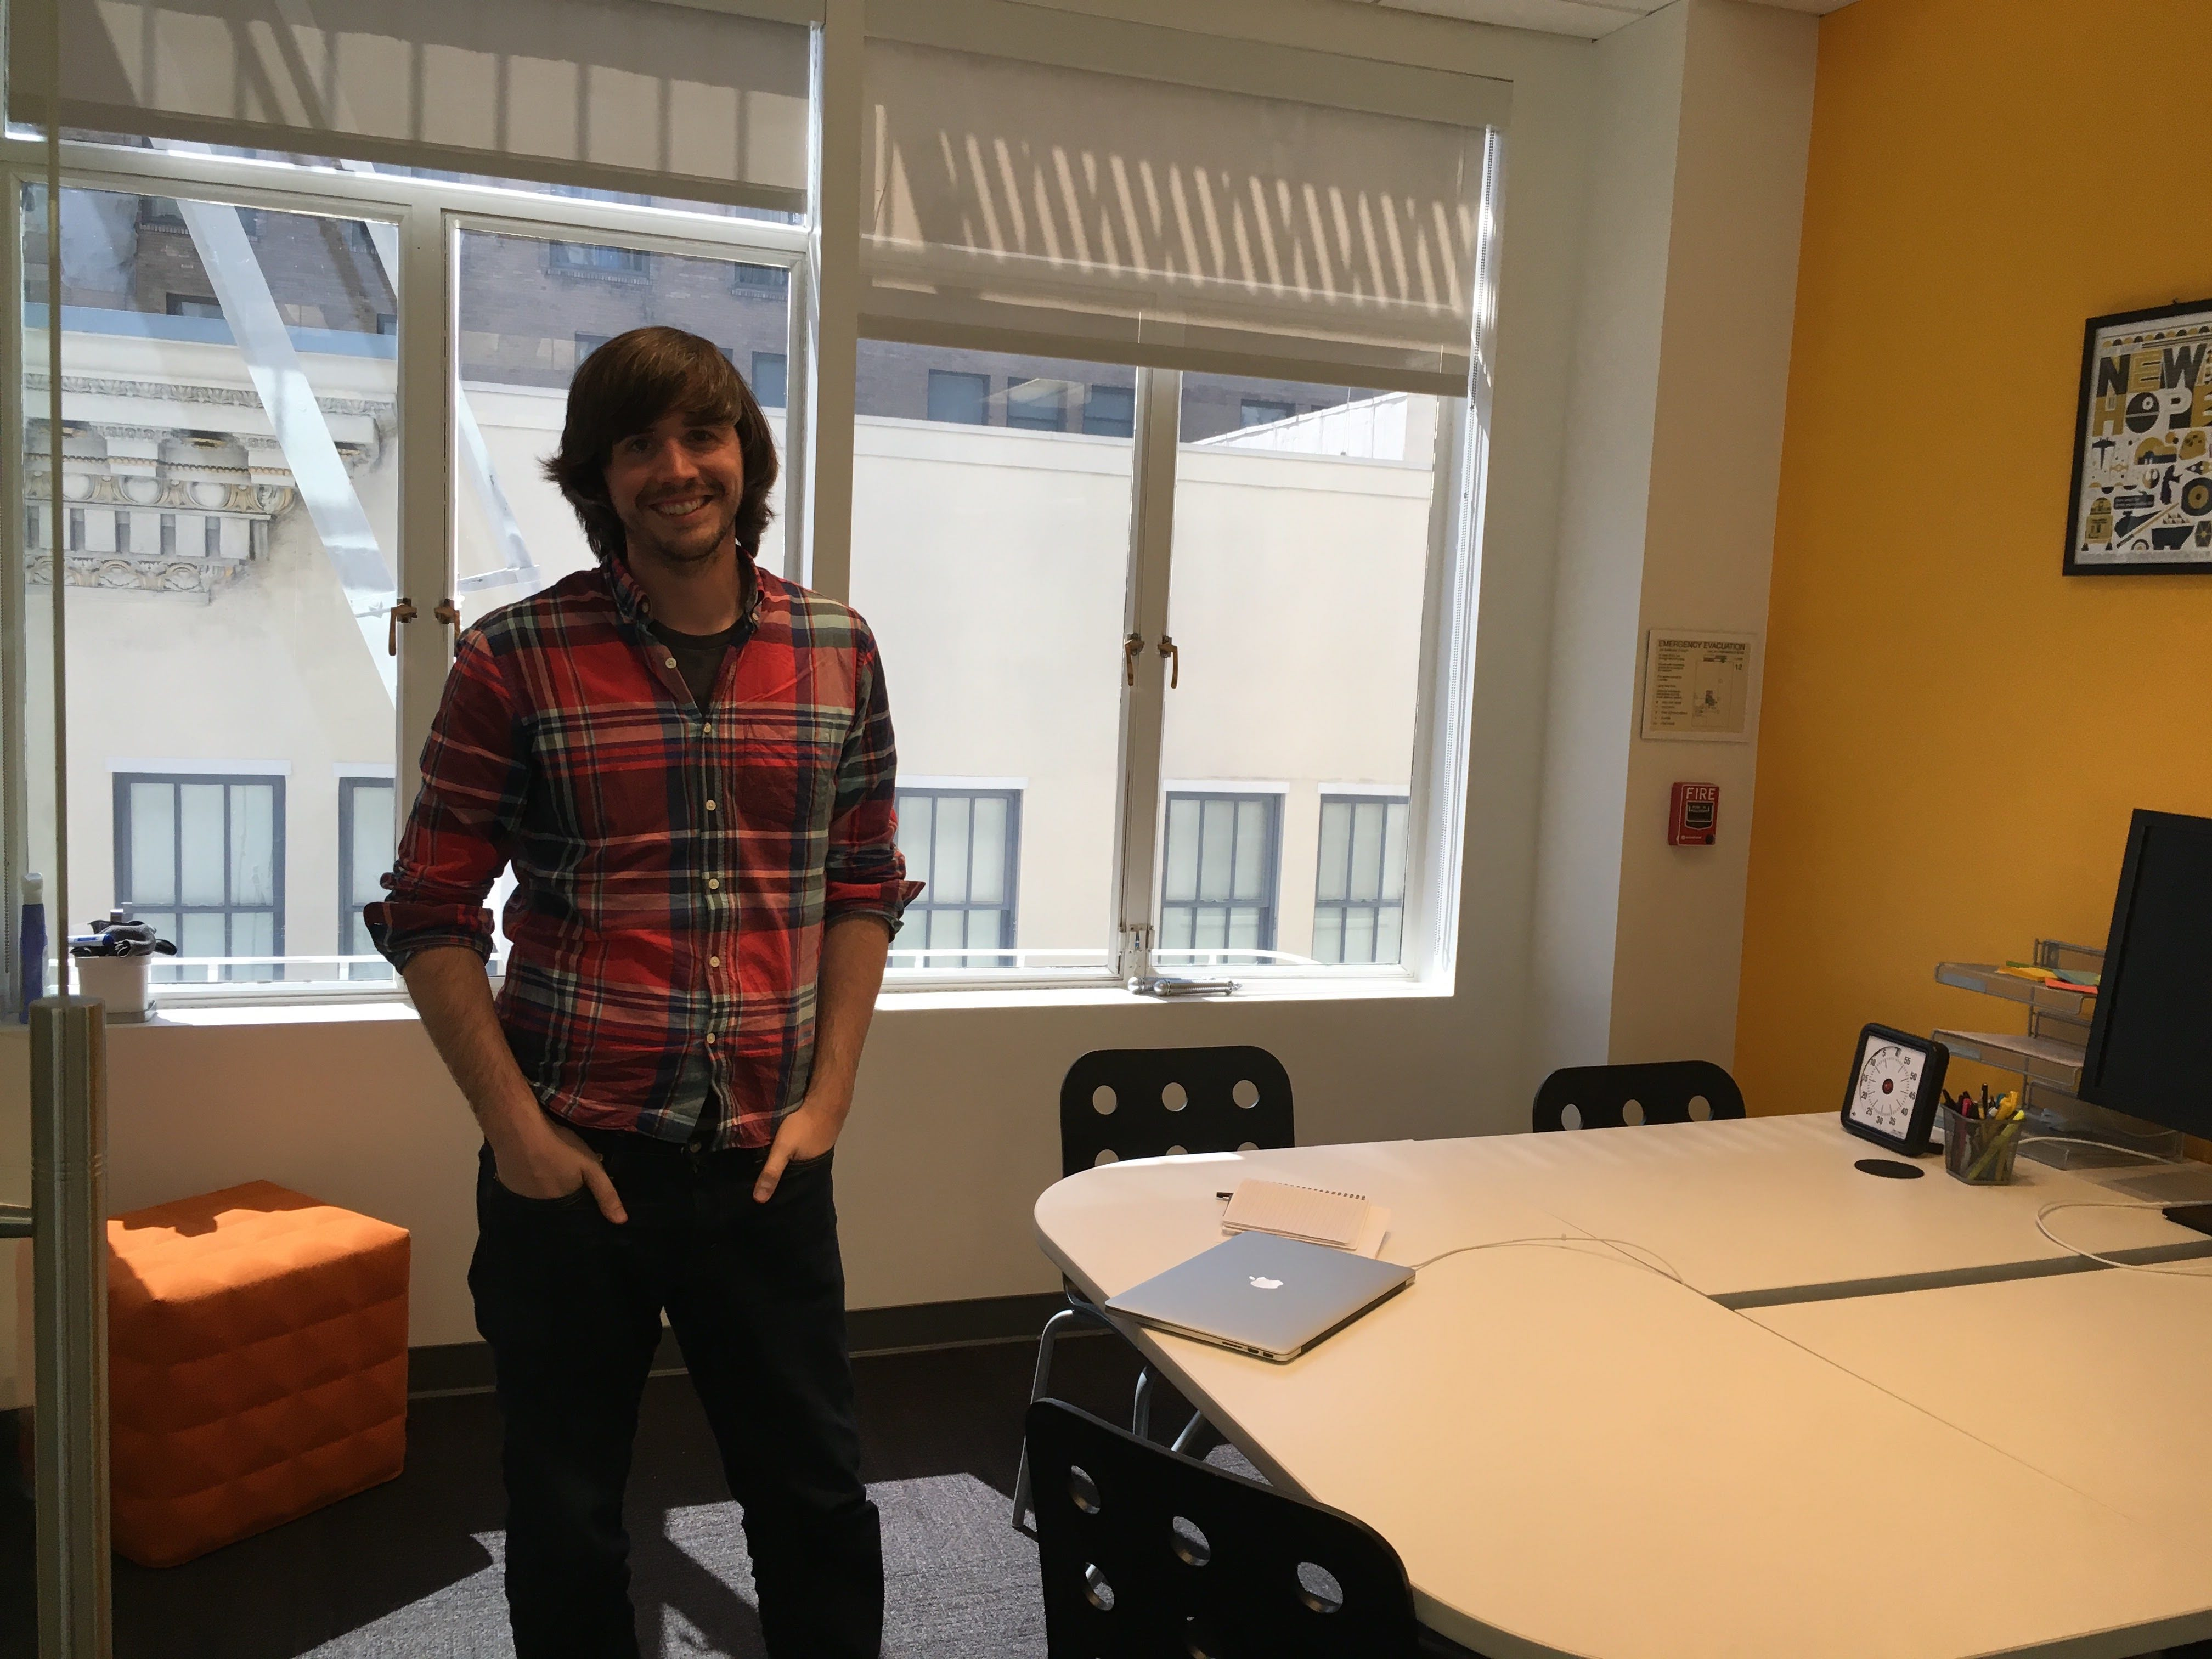 Pocket founder and chief executive Nate Weiner in his office.